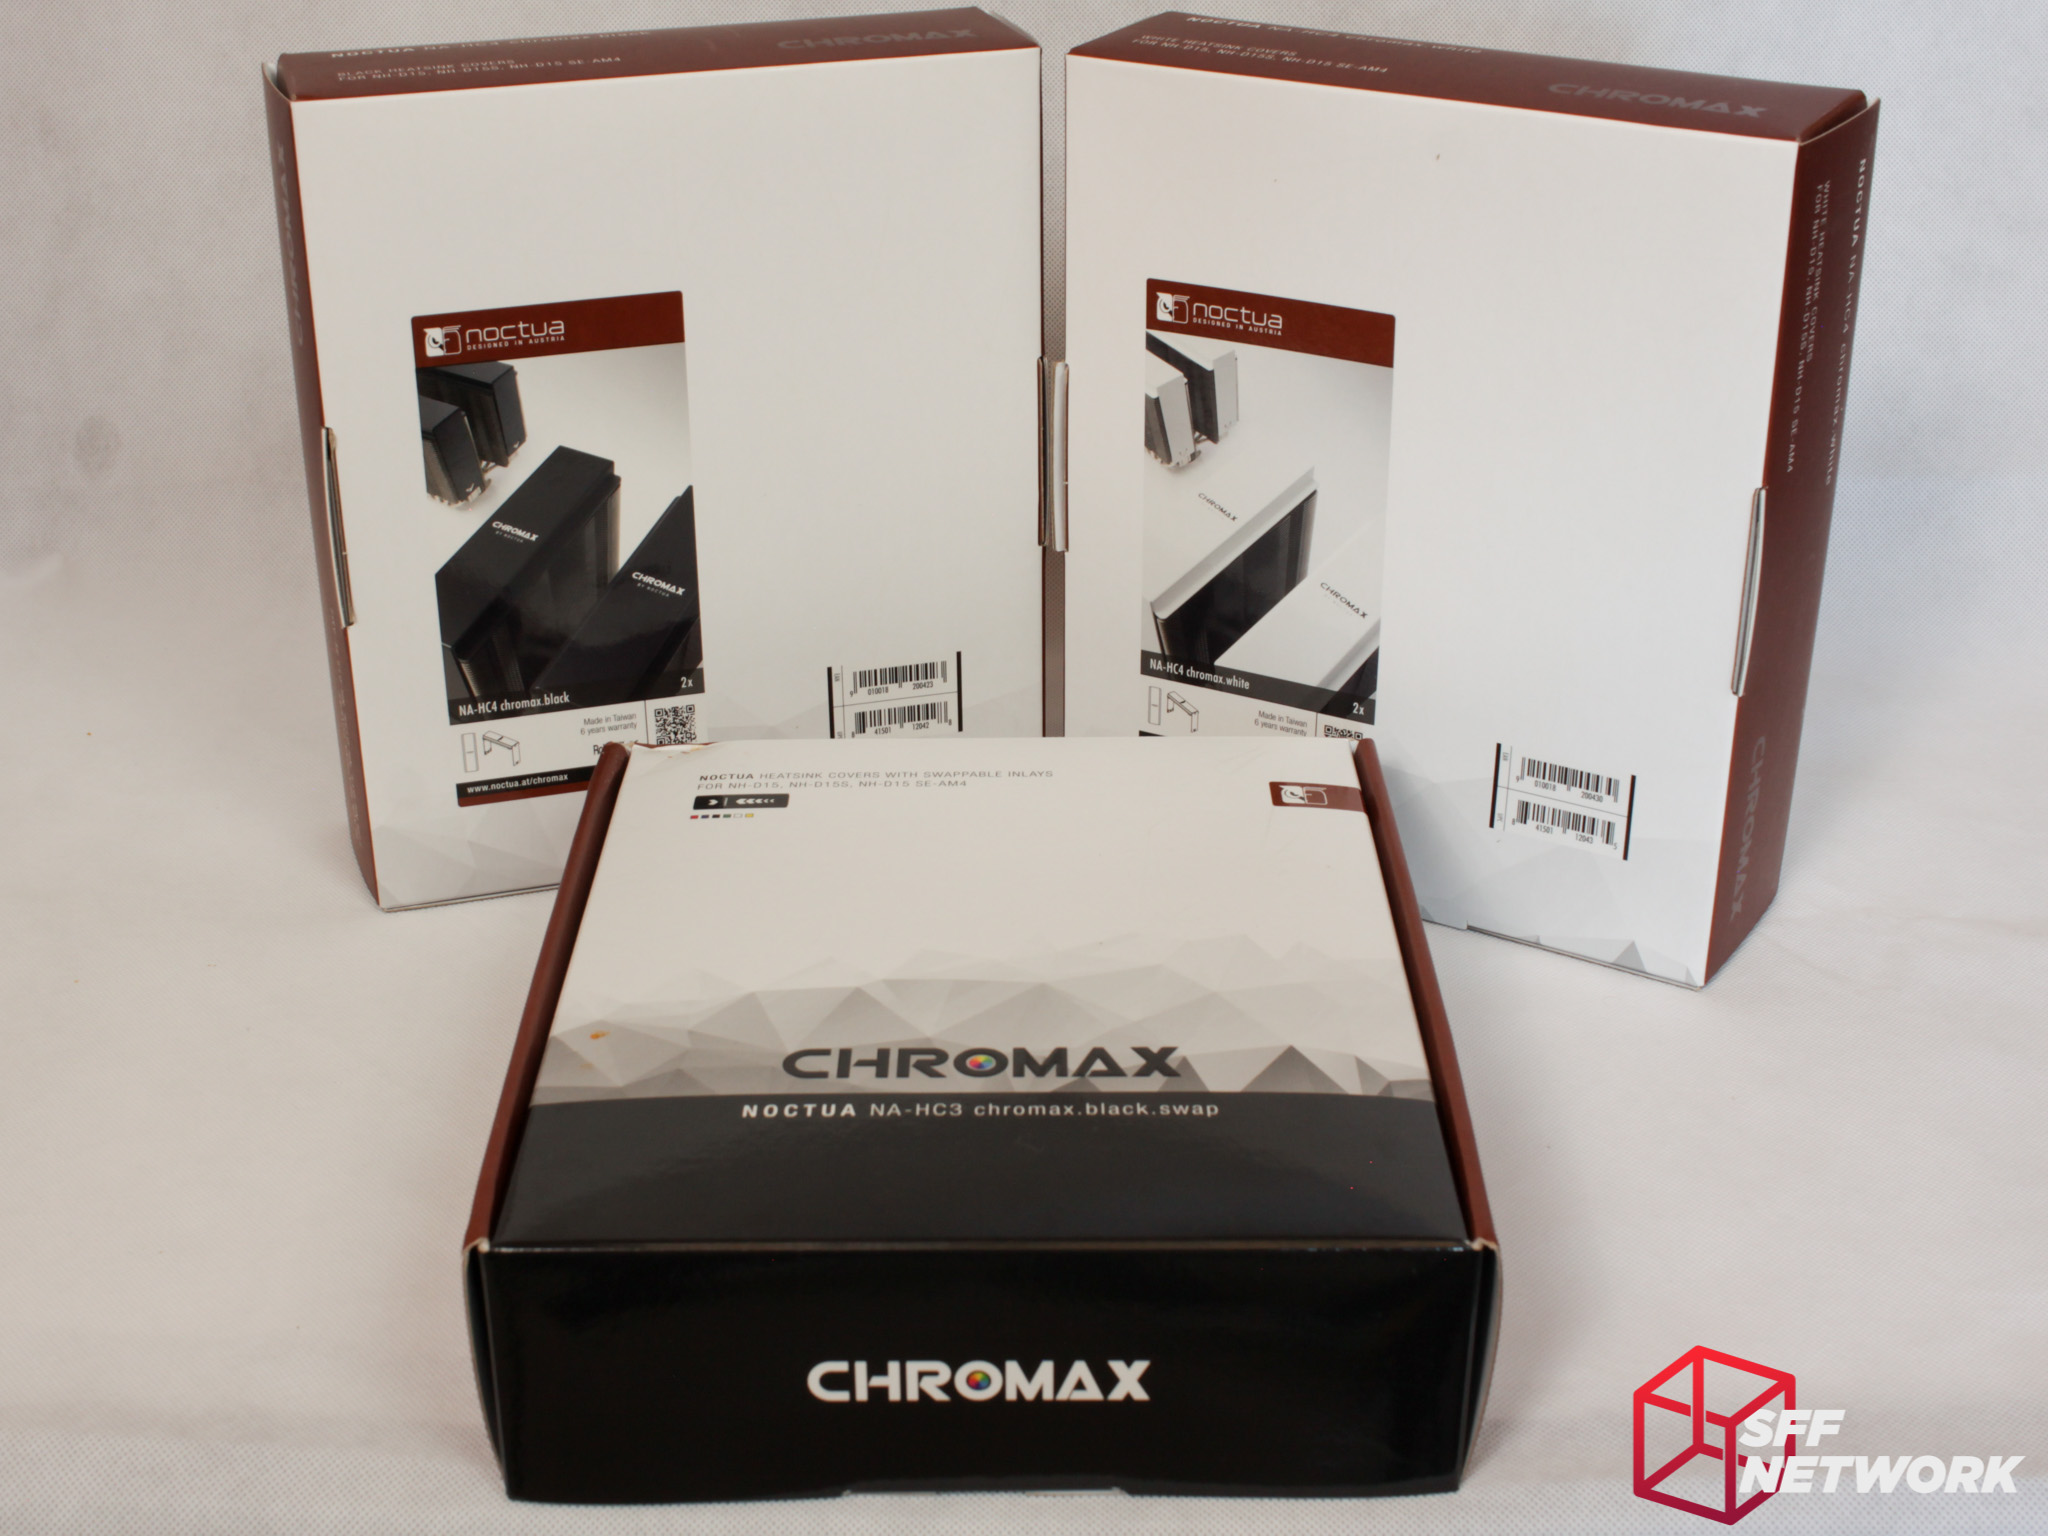 Noctua's Chromax – Custom Without RGB LEDs – SFF Network